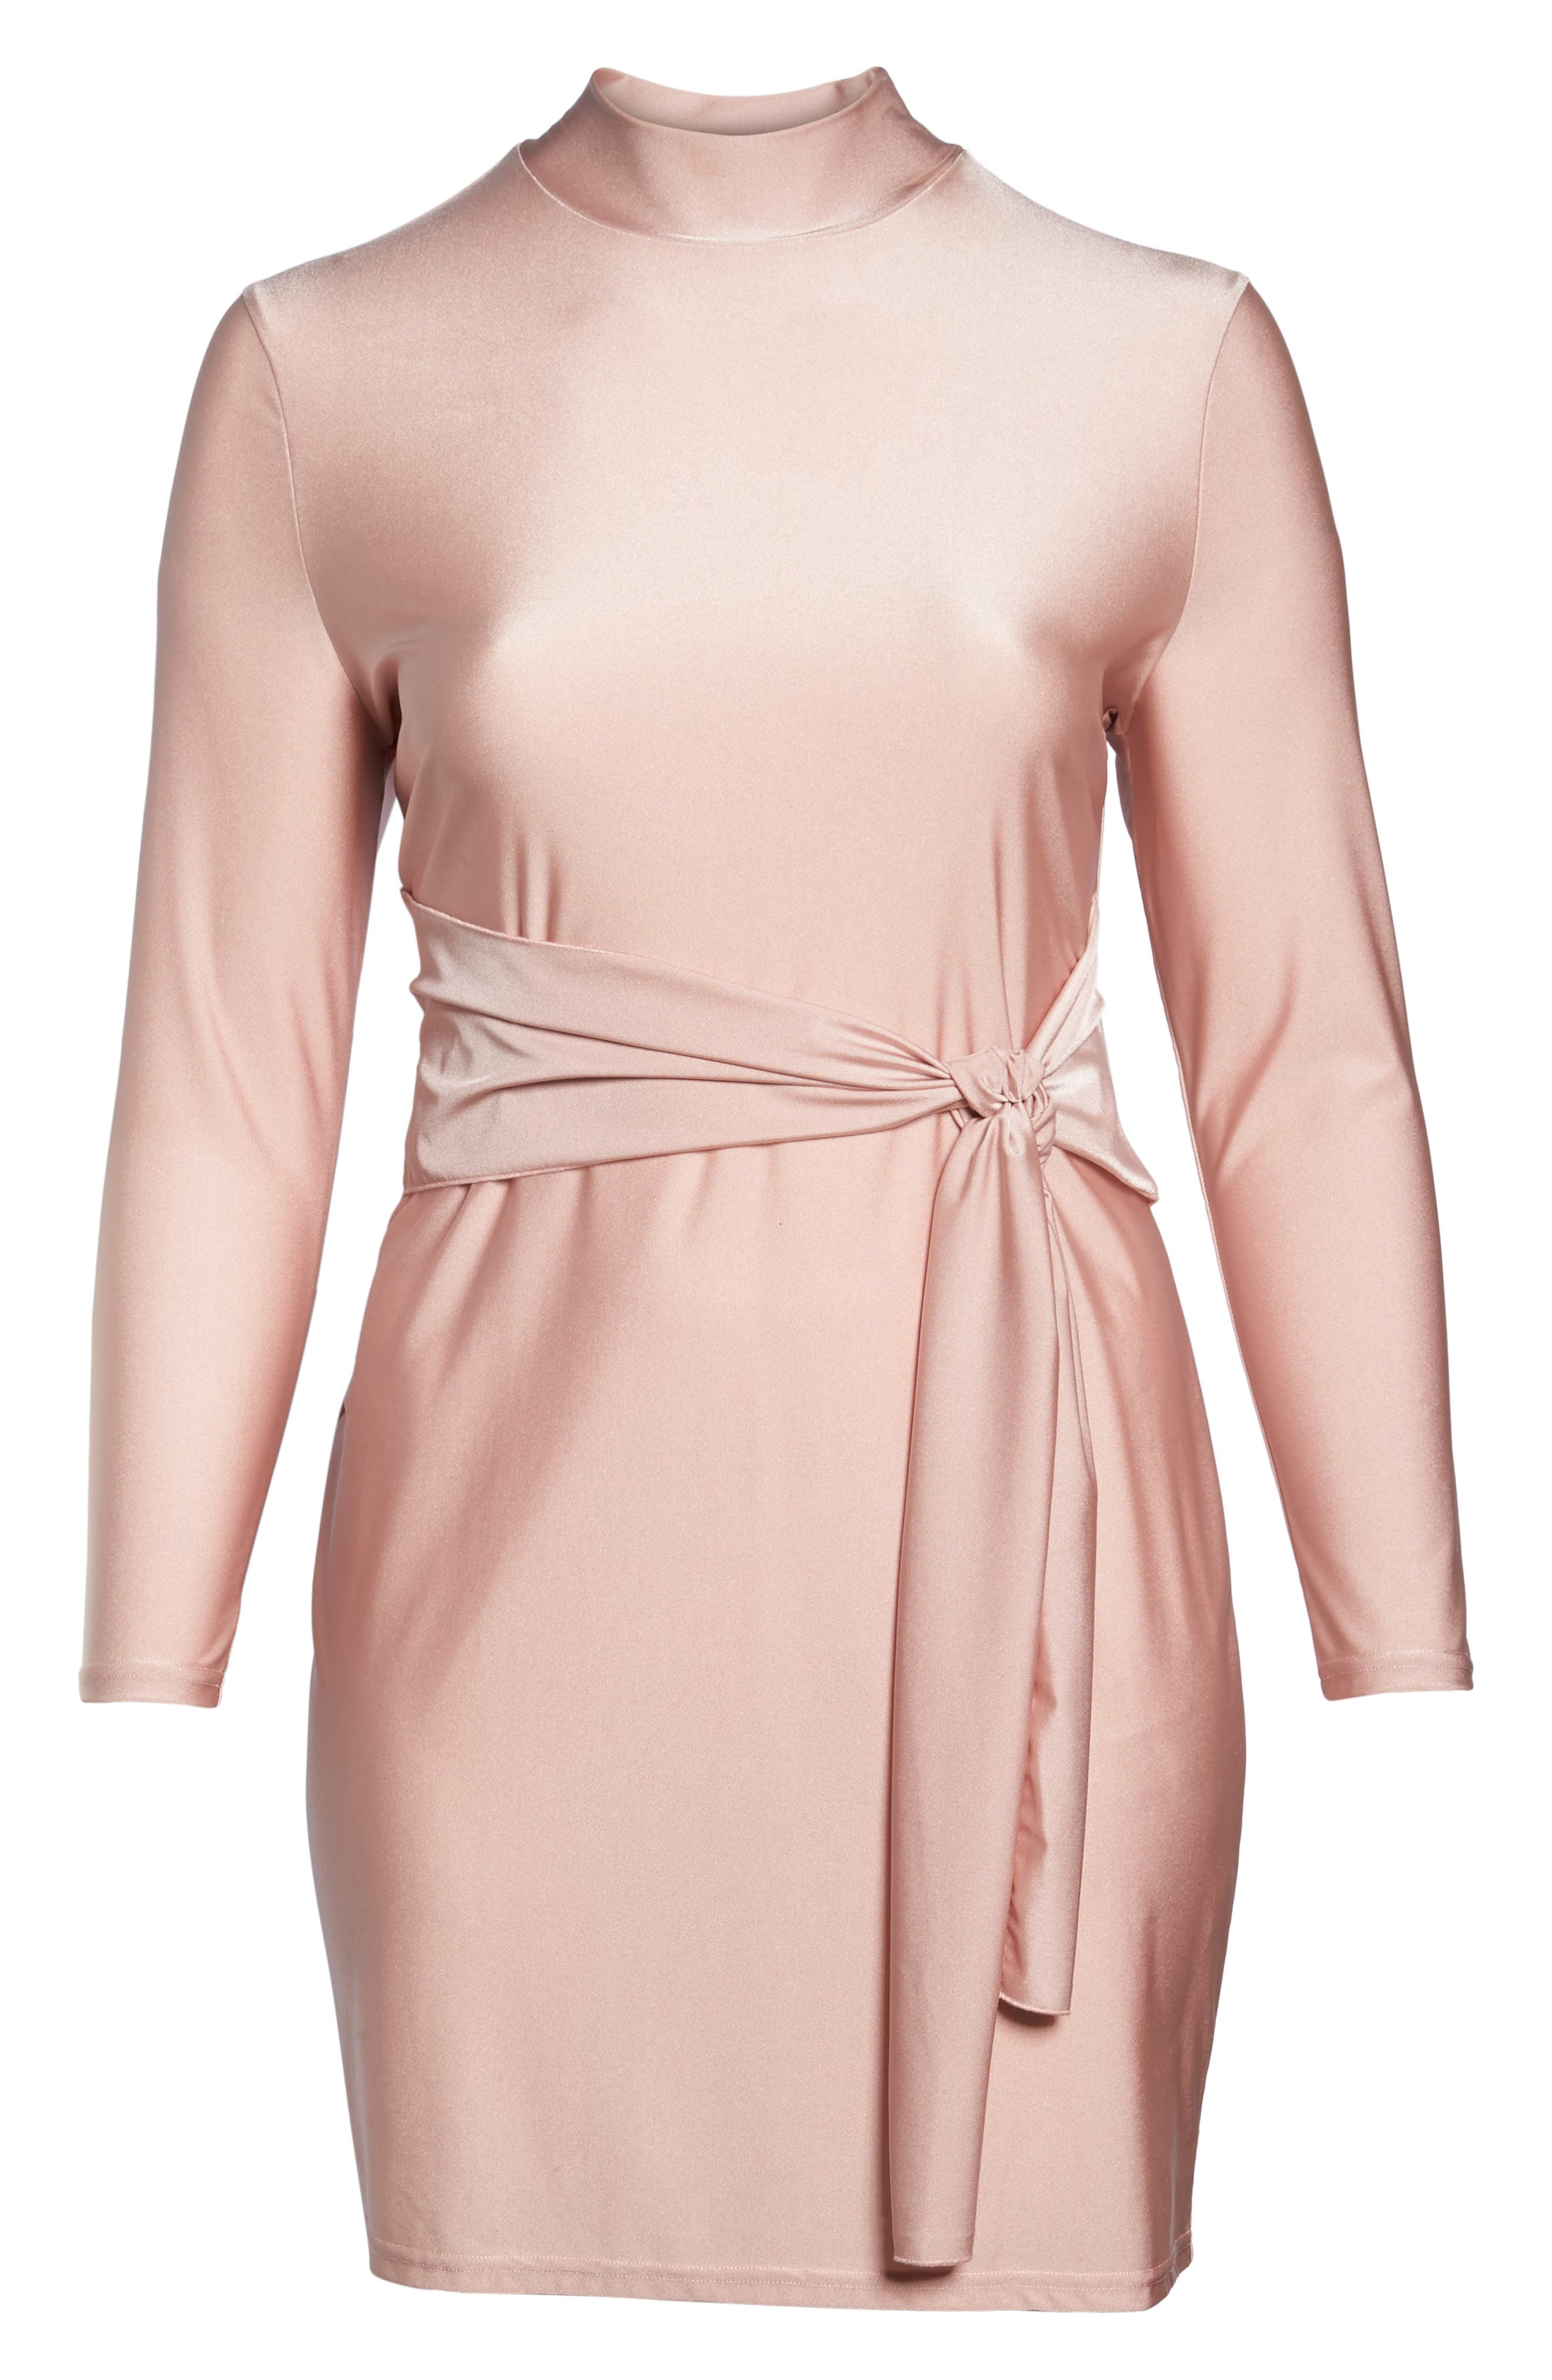 Shimmer Tie-Front Dress,                             Alternate thumbnail 6, color,                             Pink